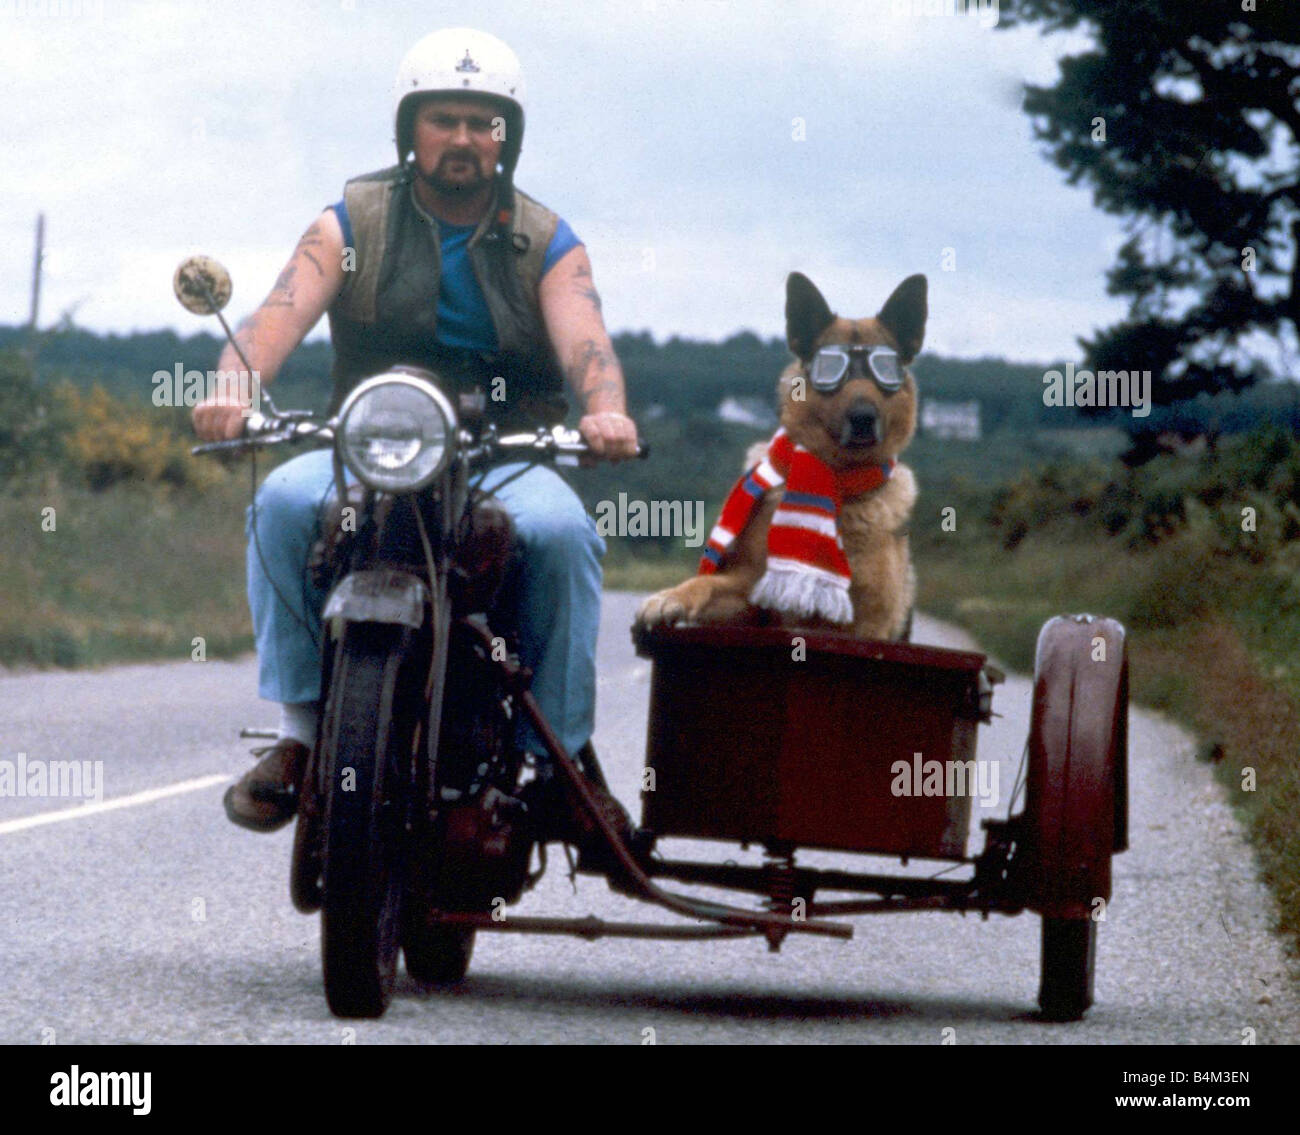 Moto Et Side Car John Smith Dinvernesswith Son Chien Shane